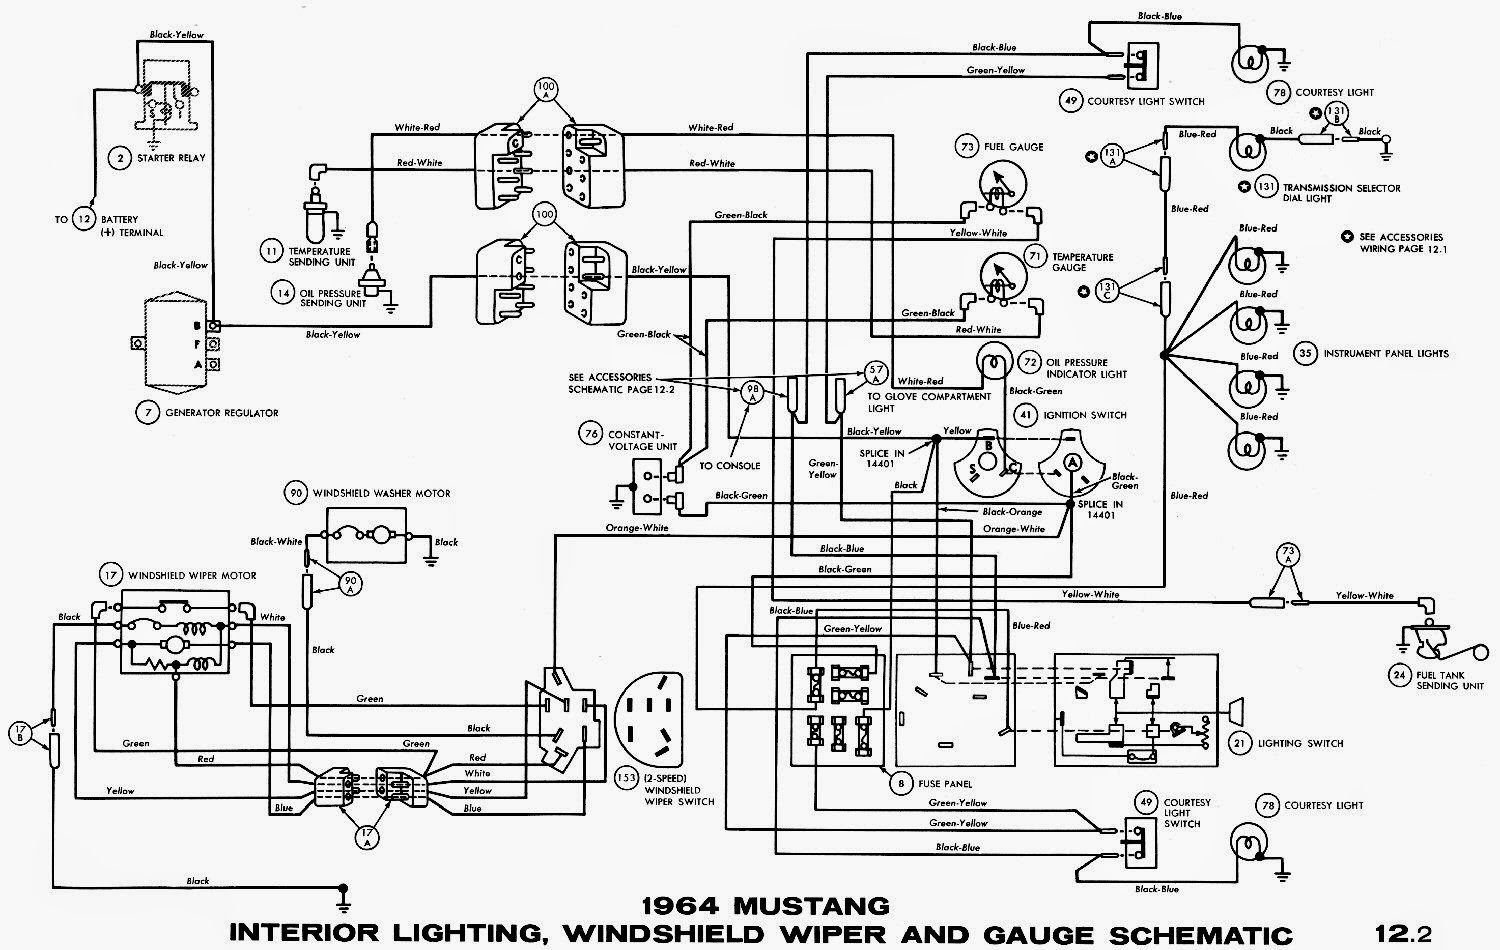 F150 Wiring Diagram 2017 as well Ford 4600 Tractor Wiring Diagram Instermemt P in addition 1321136 86 F 150 Eec Power Relay in addition 1964 Mustang Wiring Diagrams Schematic moreover Mustang Wiring And Vacuum Diagrams. on f100 wiper motor wiring diagram